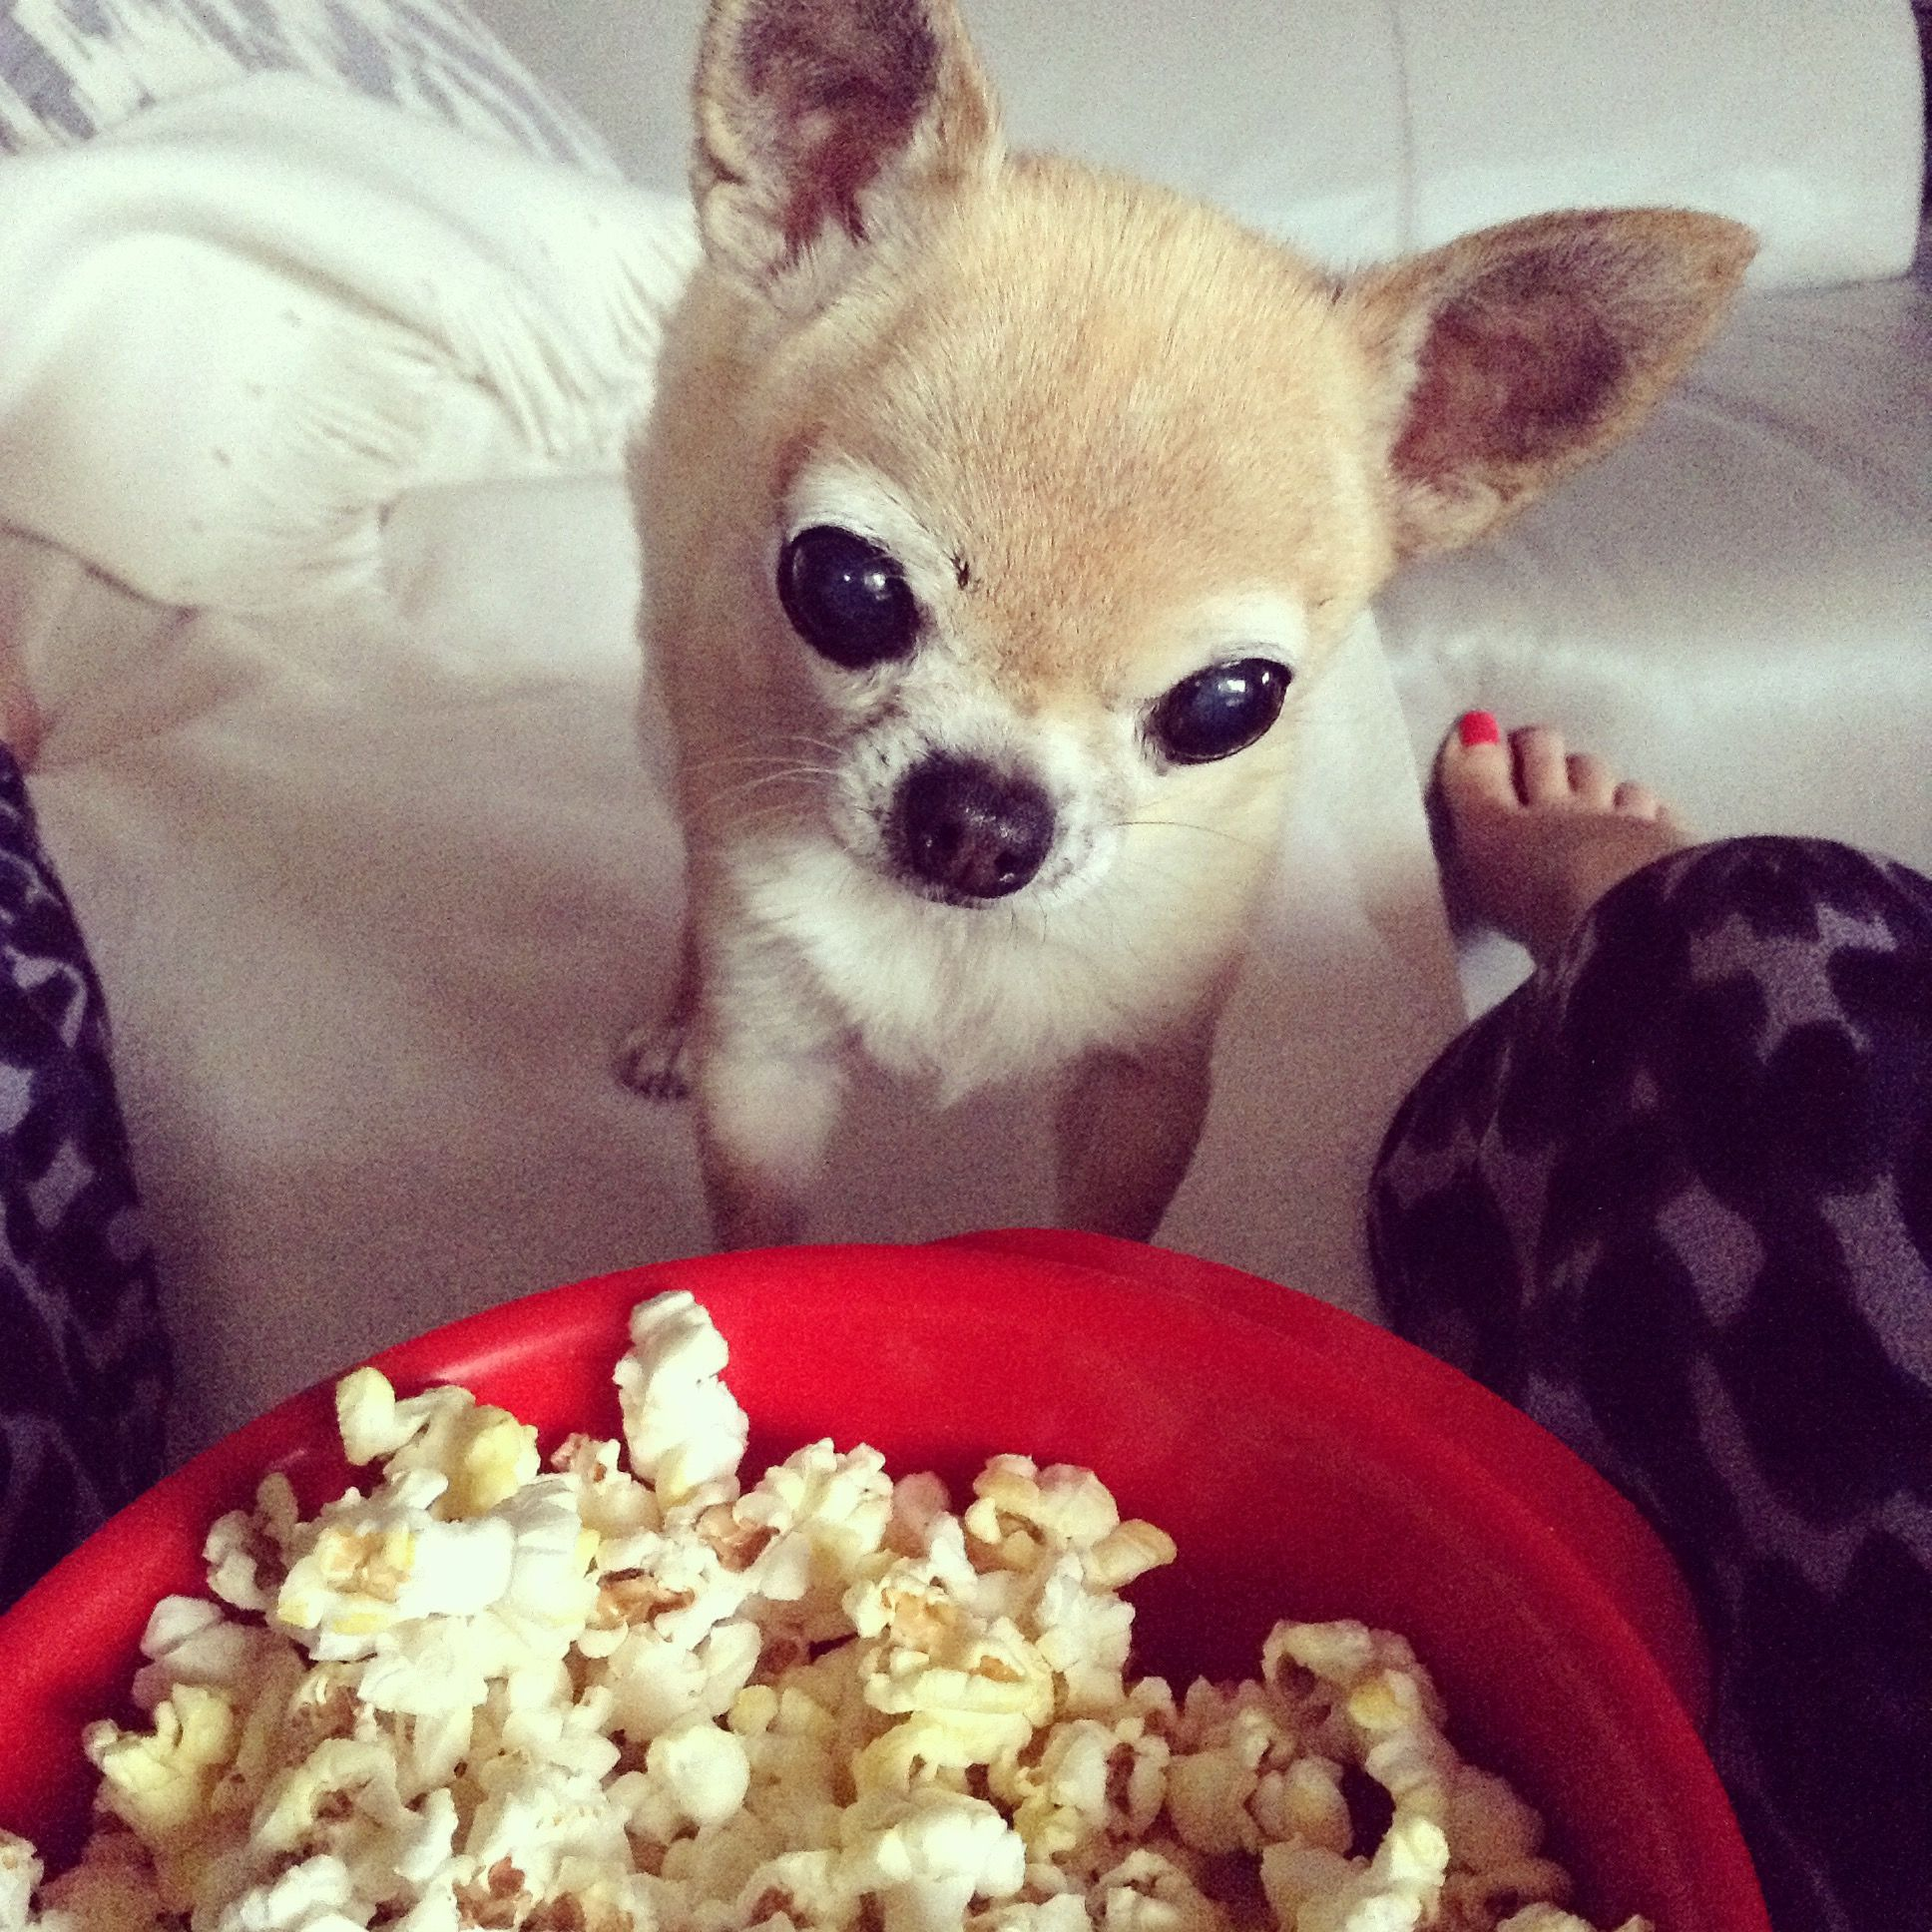 Mmm Pupcorn Furry Friends Cute Chihuahua Chihuahua Dogs